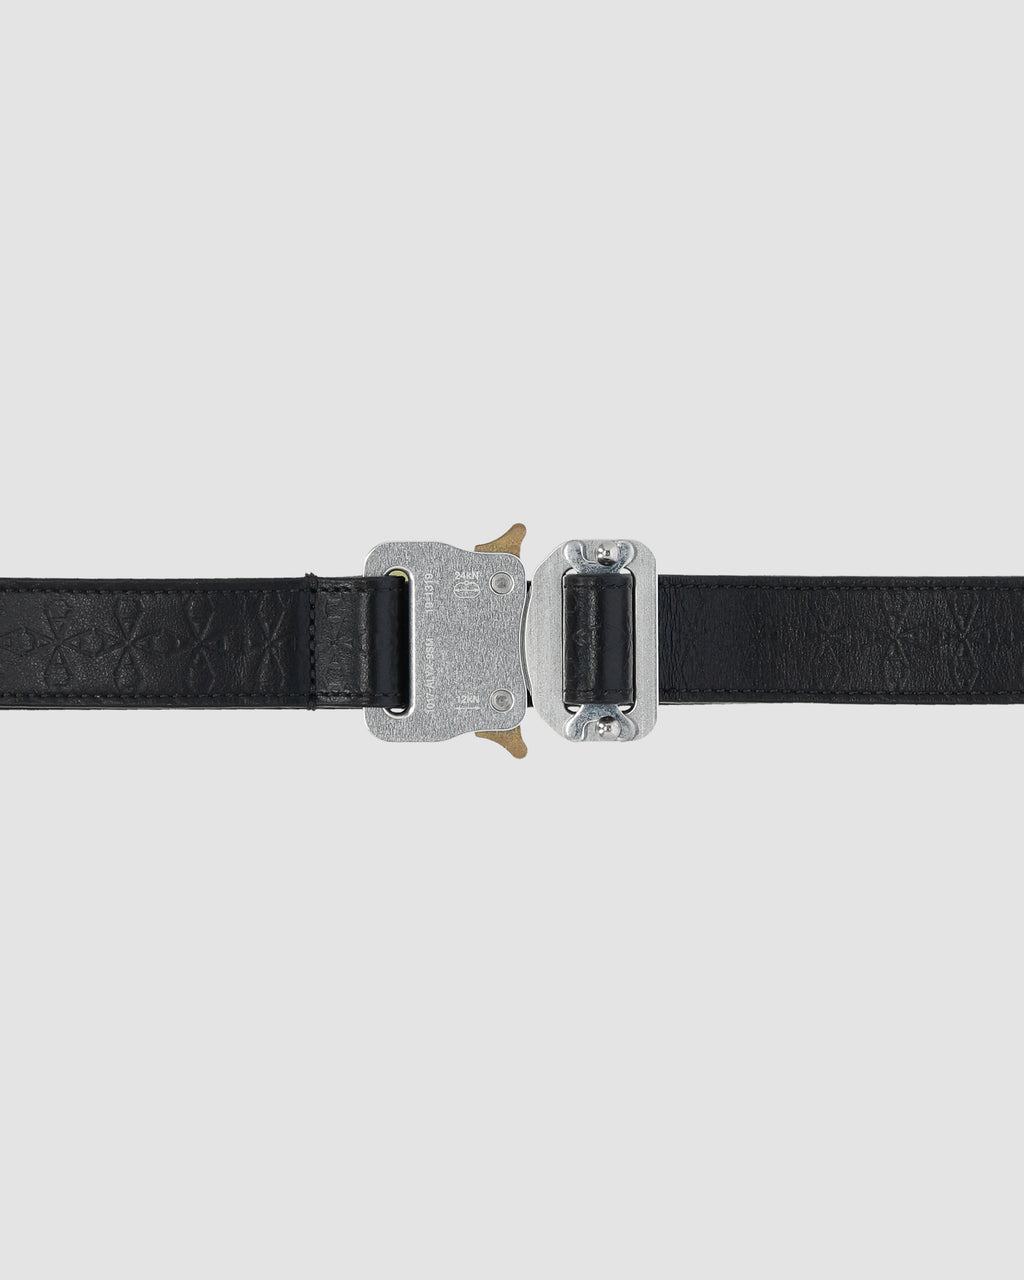 1017 ALYX 9SM | MONOGRAM MEDIUM ROLLERCOASTER BELT | Belt | Accessories, Belt, BELTS, BLACK, Google Shopping, Man, S20, S20 Drop II, UNISEX, Woman